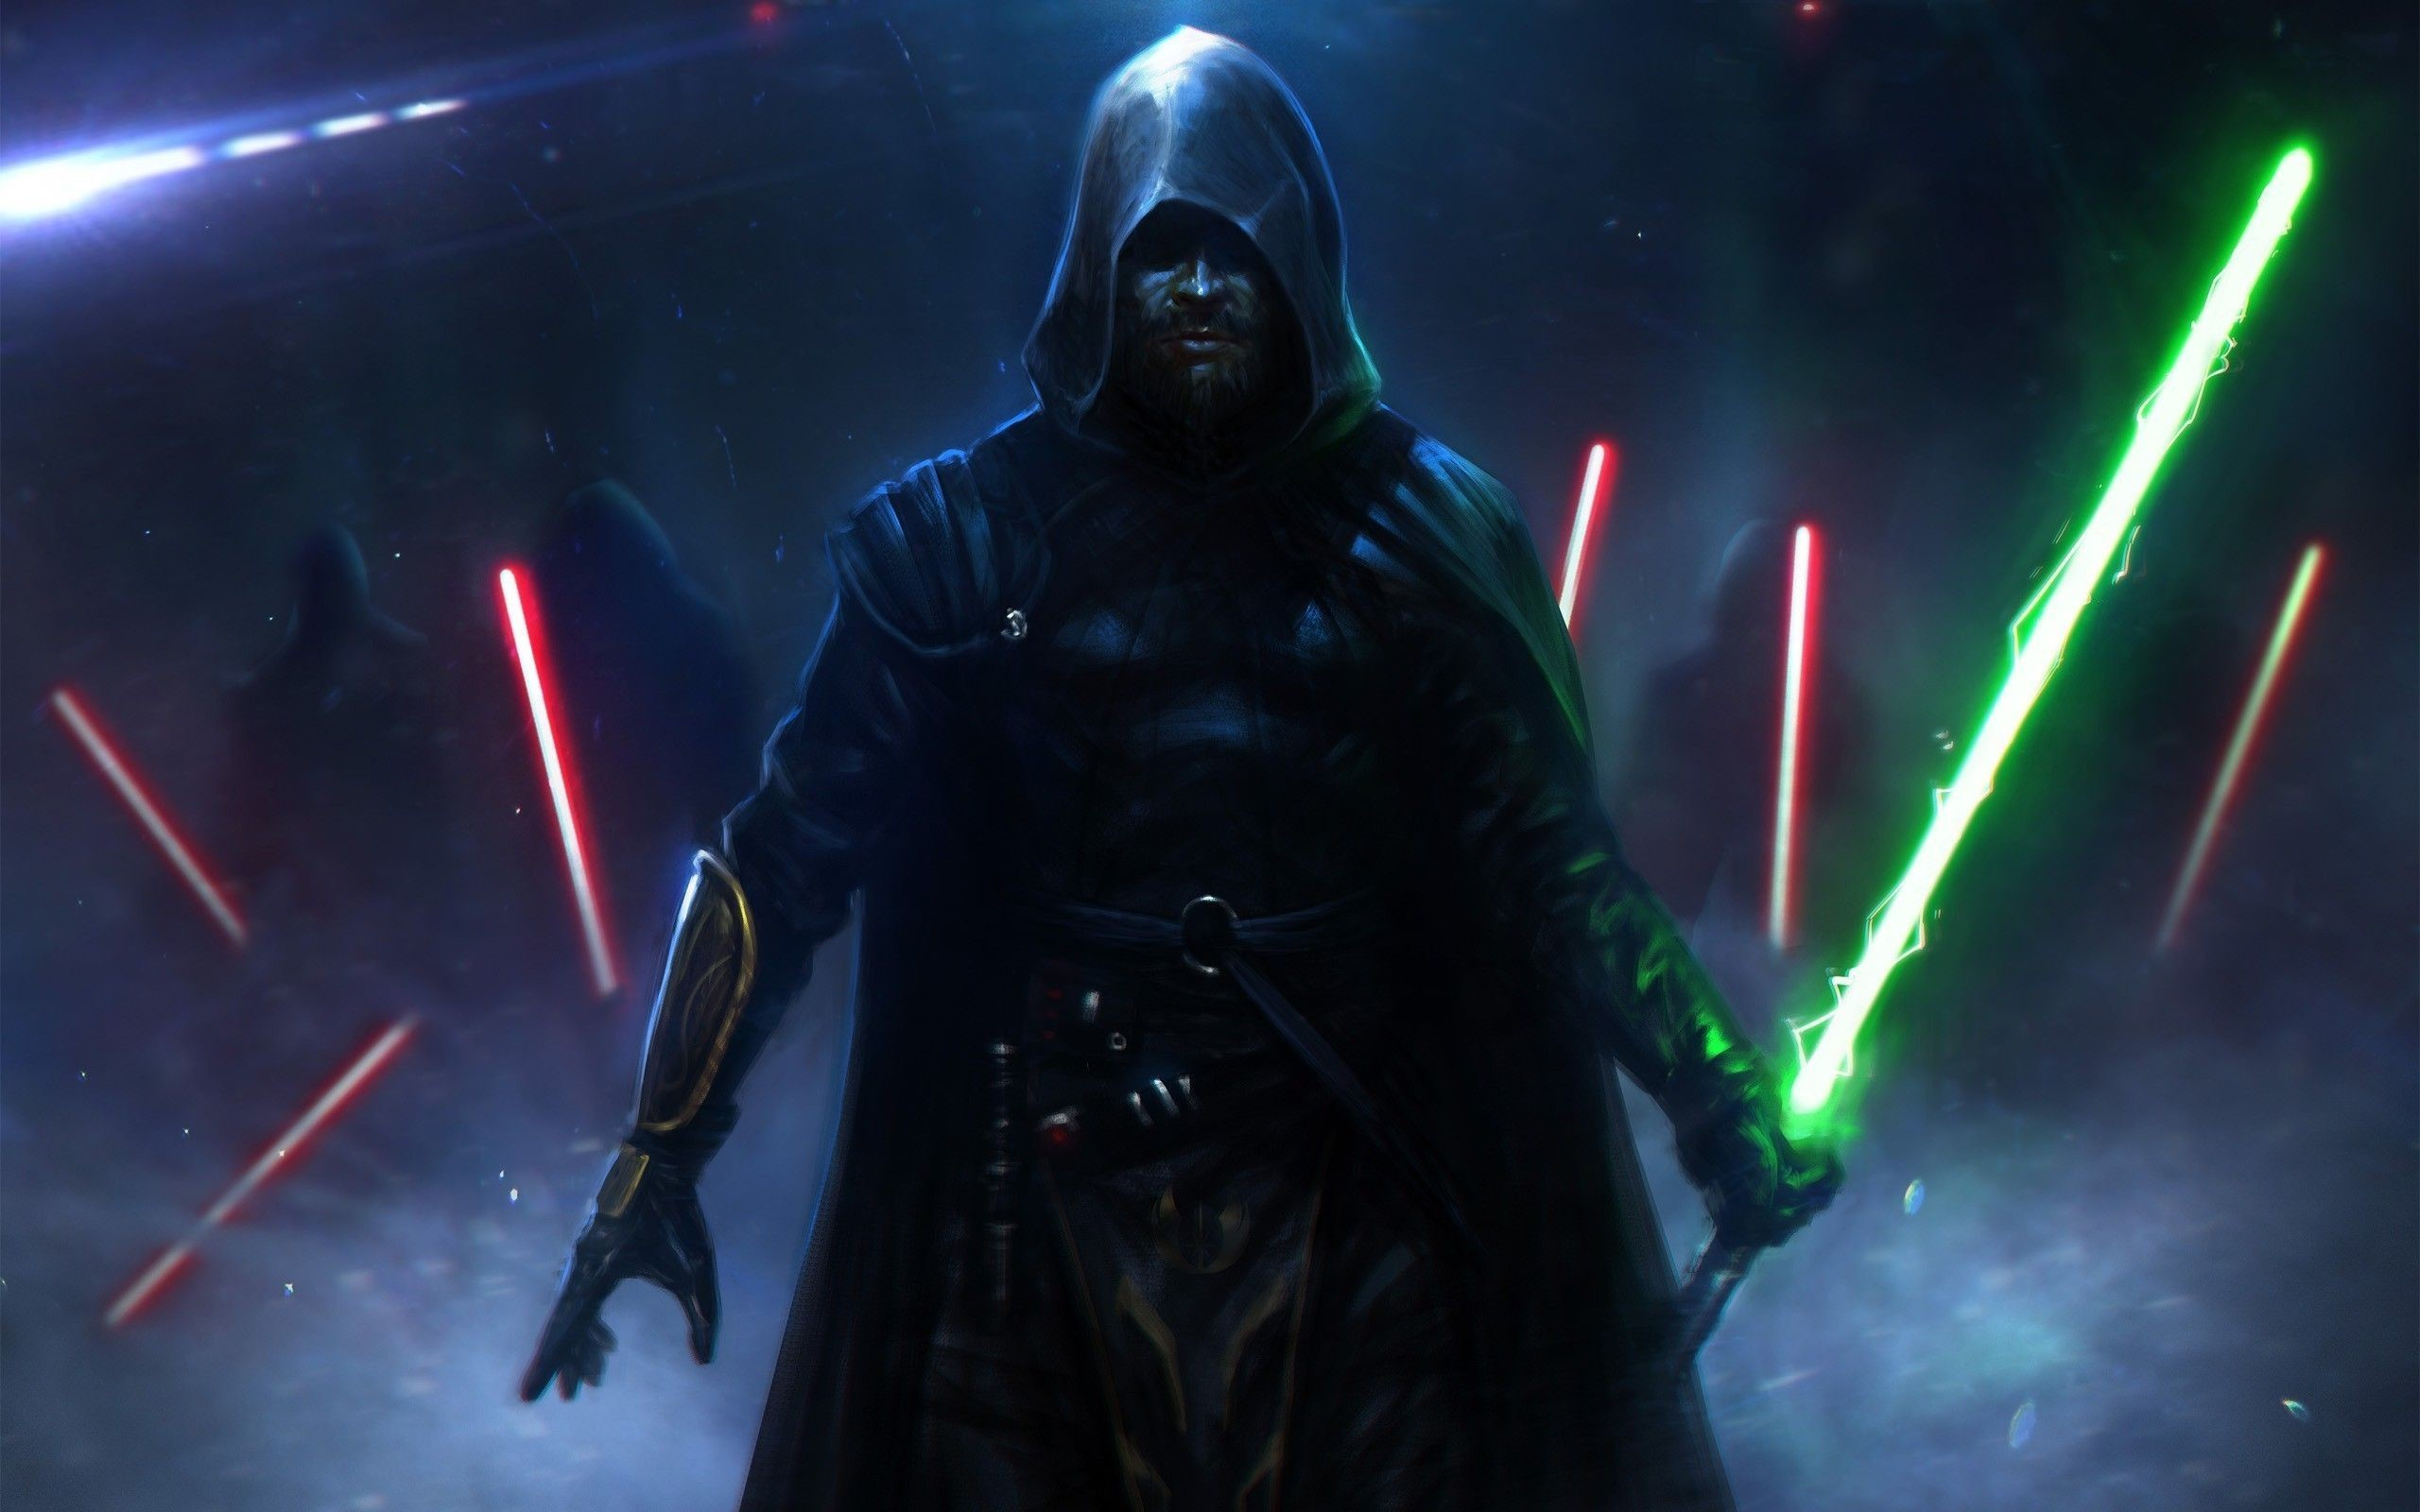 Res: 2560x1600, Star Wars Jedi Wallpaper High Quality Resolution